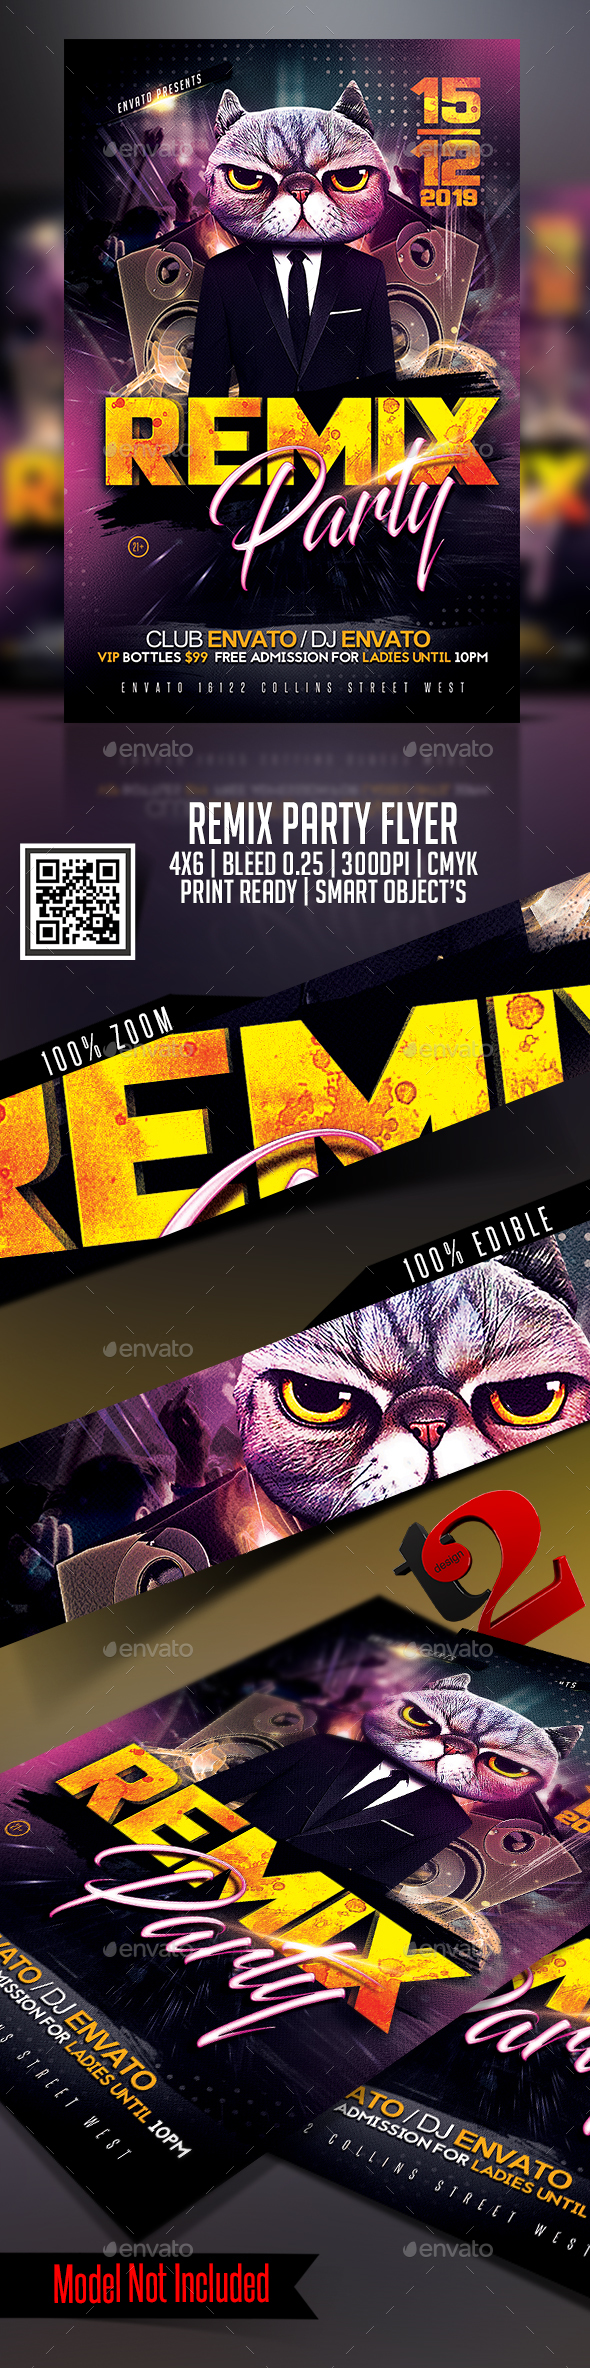 Remix Party Flyer Template - Clubs & Parties Events